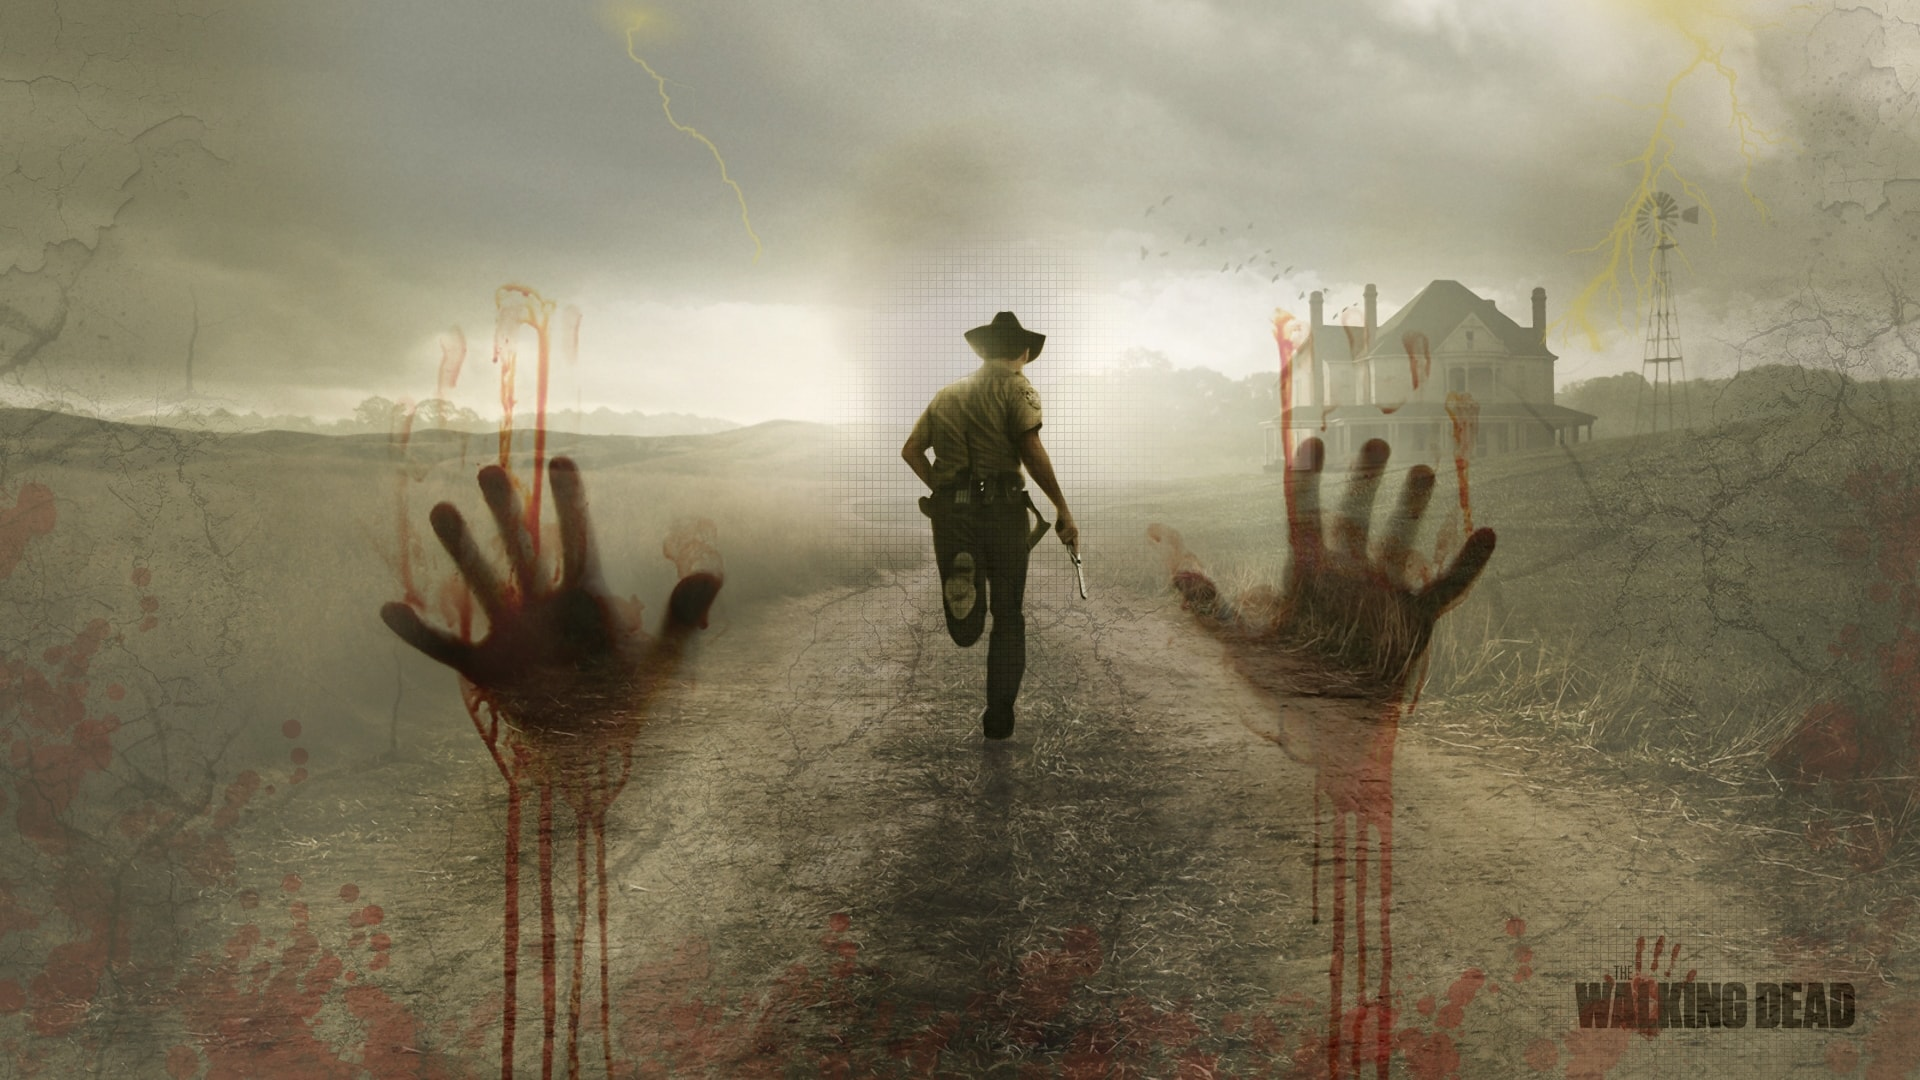 The Walking Dead Hd Wallpapers 7wallpapers Net